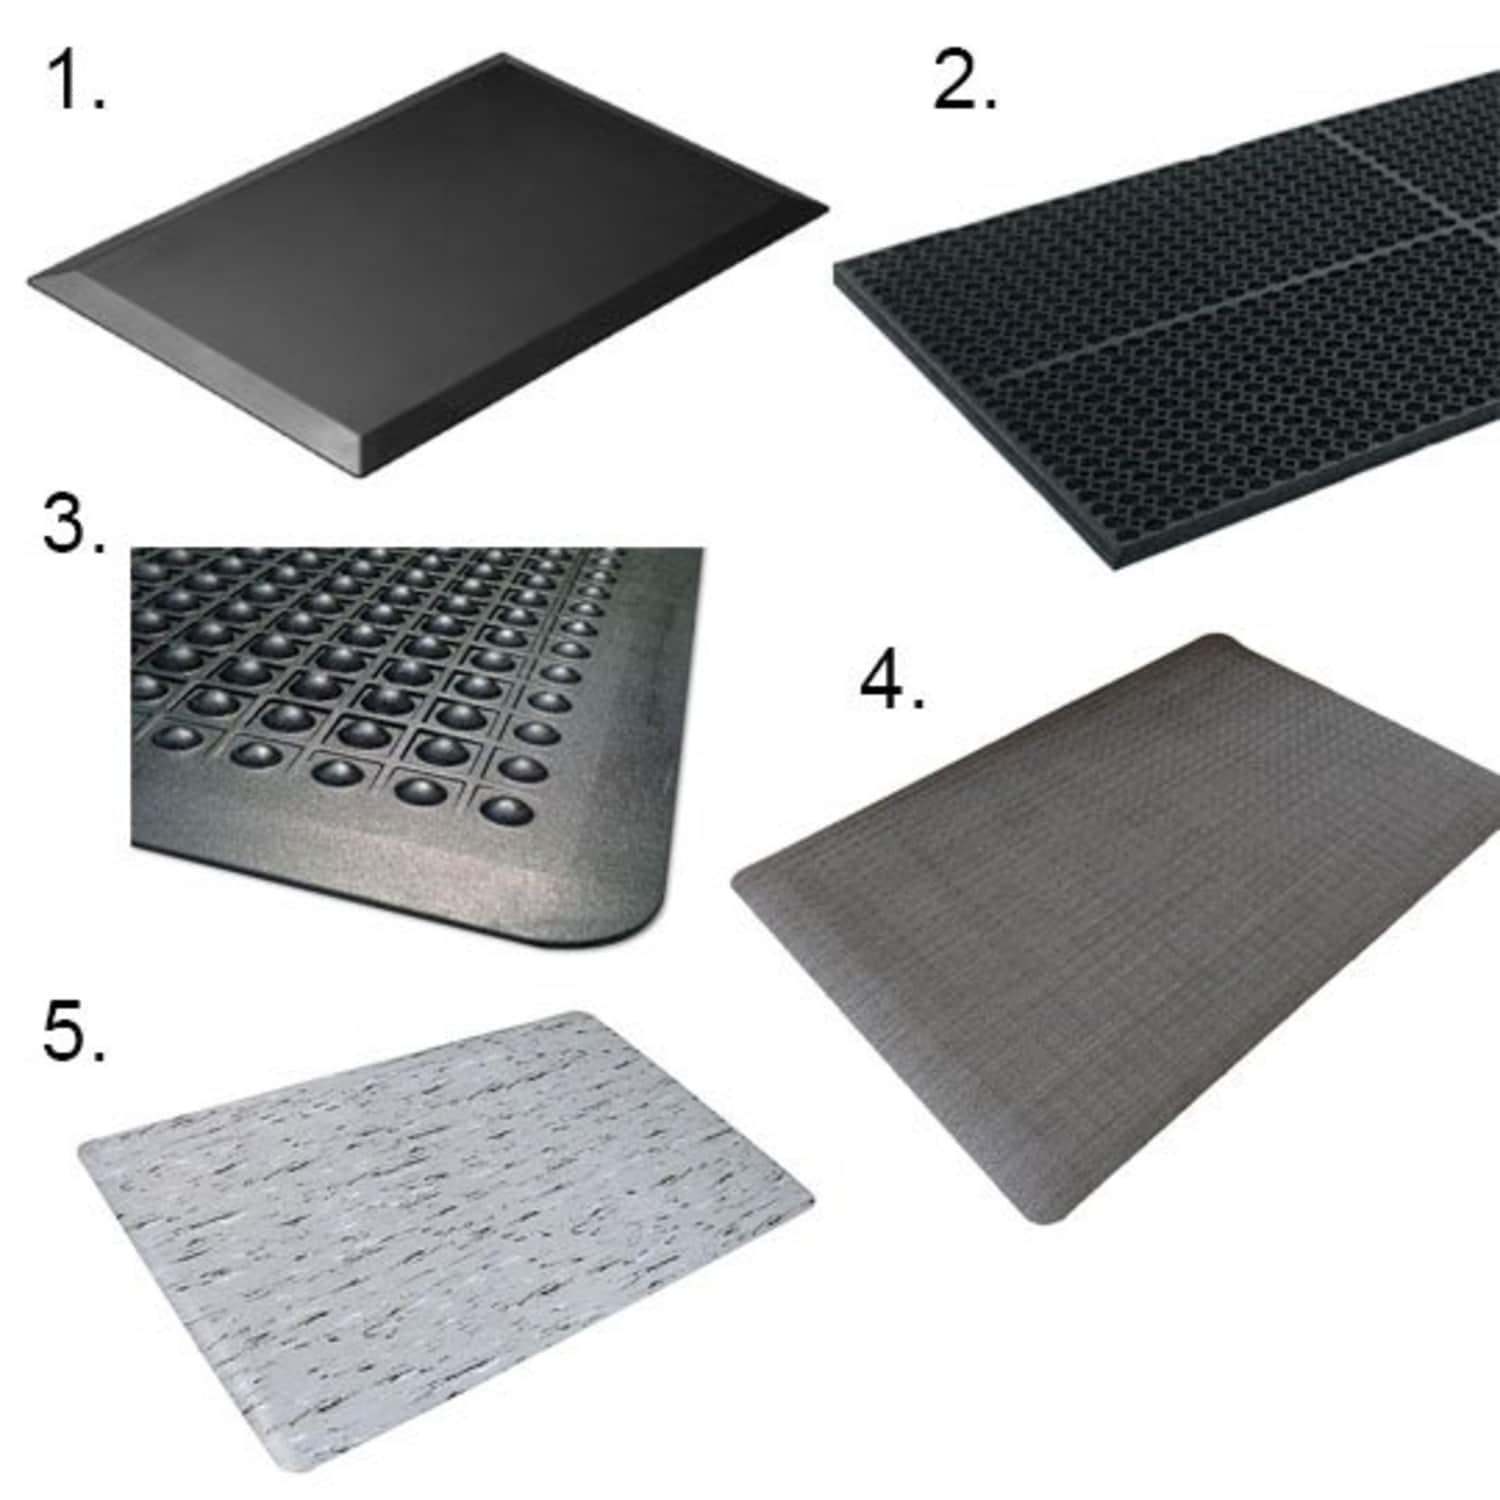 5 Anti Fatigue Gel Mats To Save Your Back Kitchn